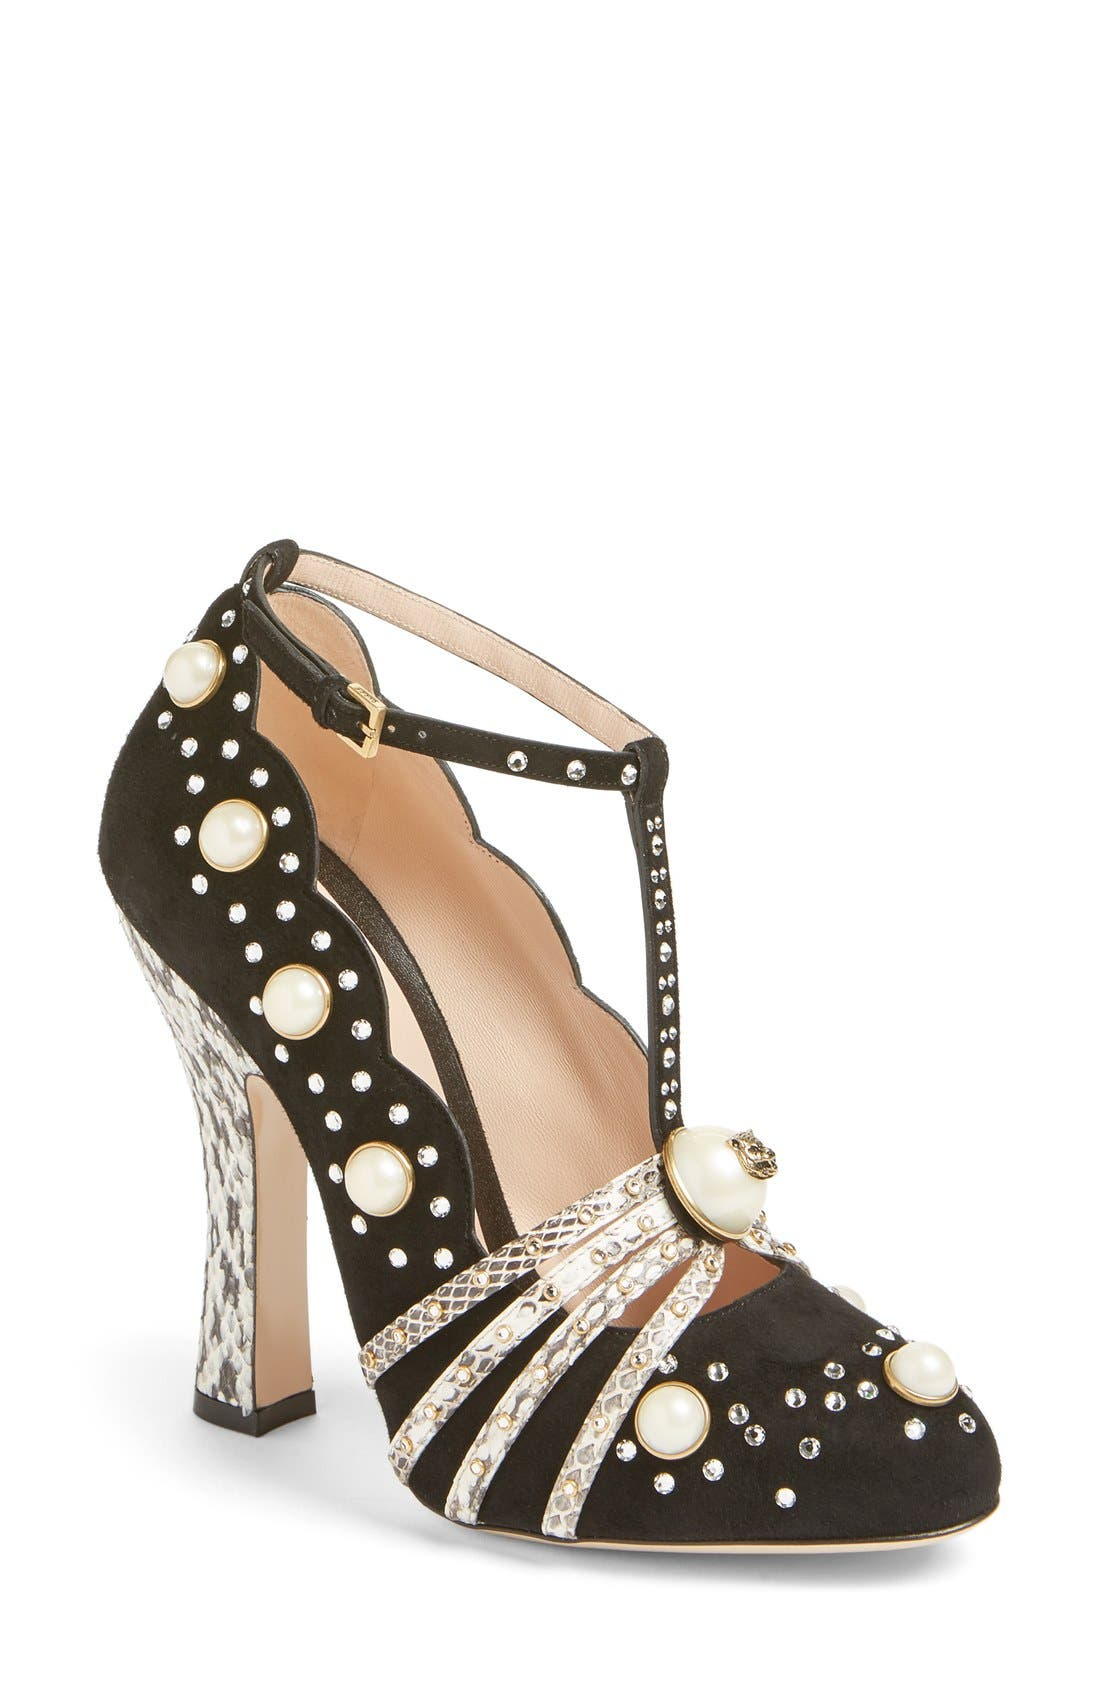 Ofelia Pearly Crystal Embellished Pump,                         Main,                         color, 001